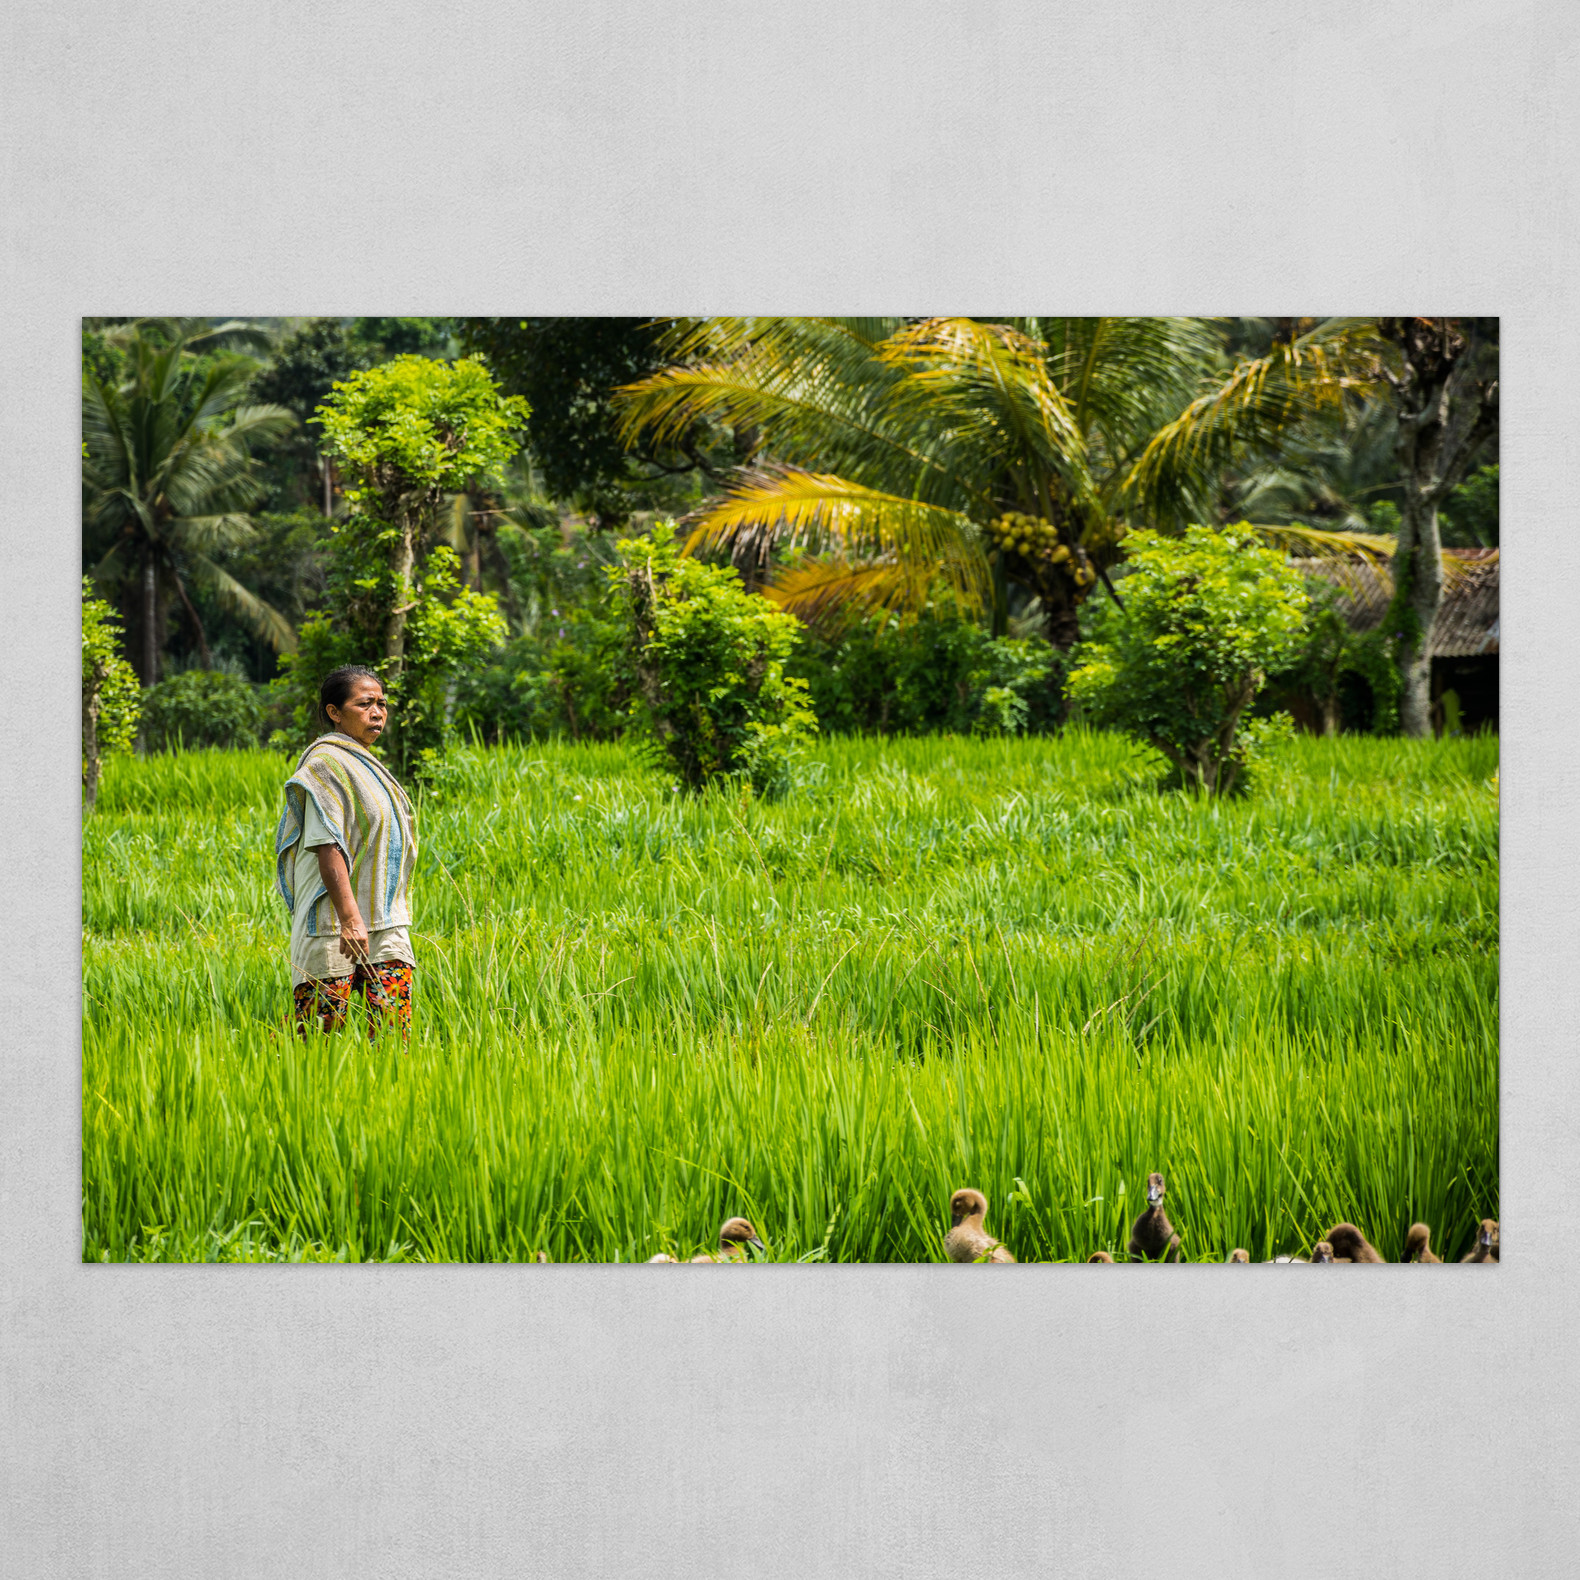 Let's hide in the rice fields